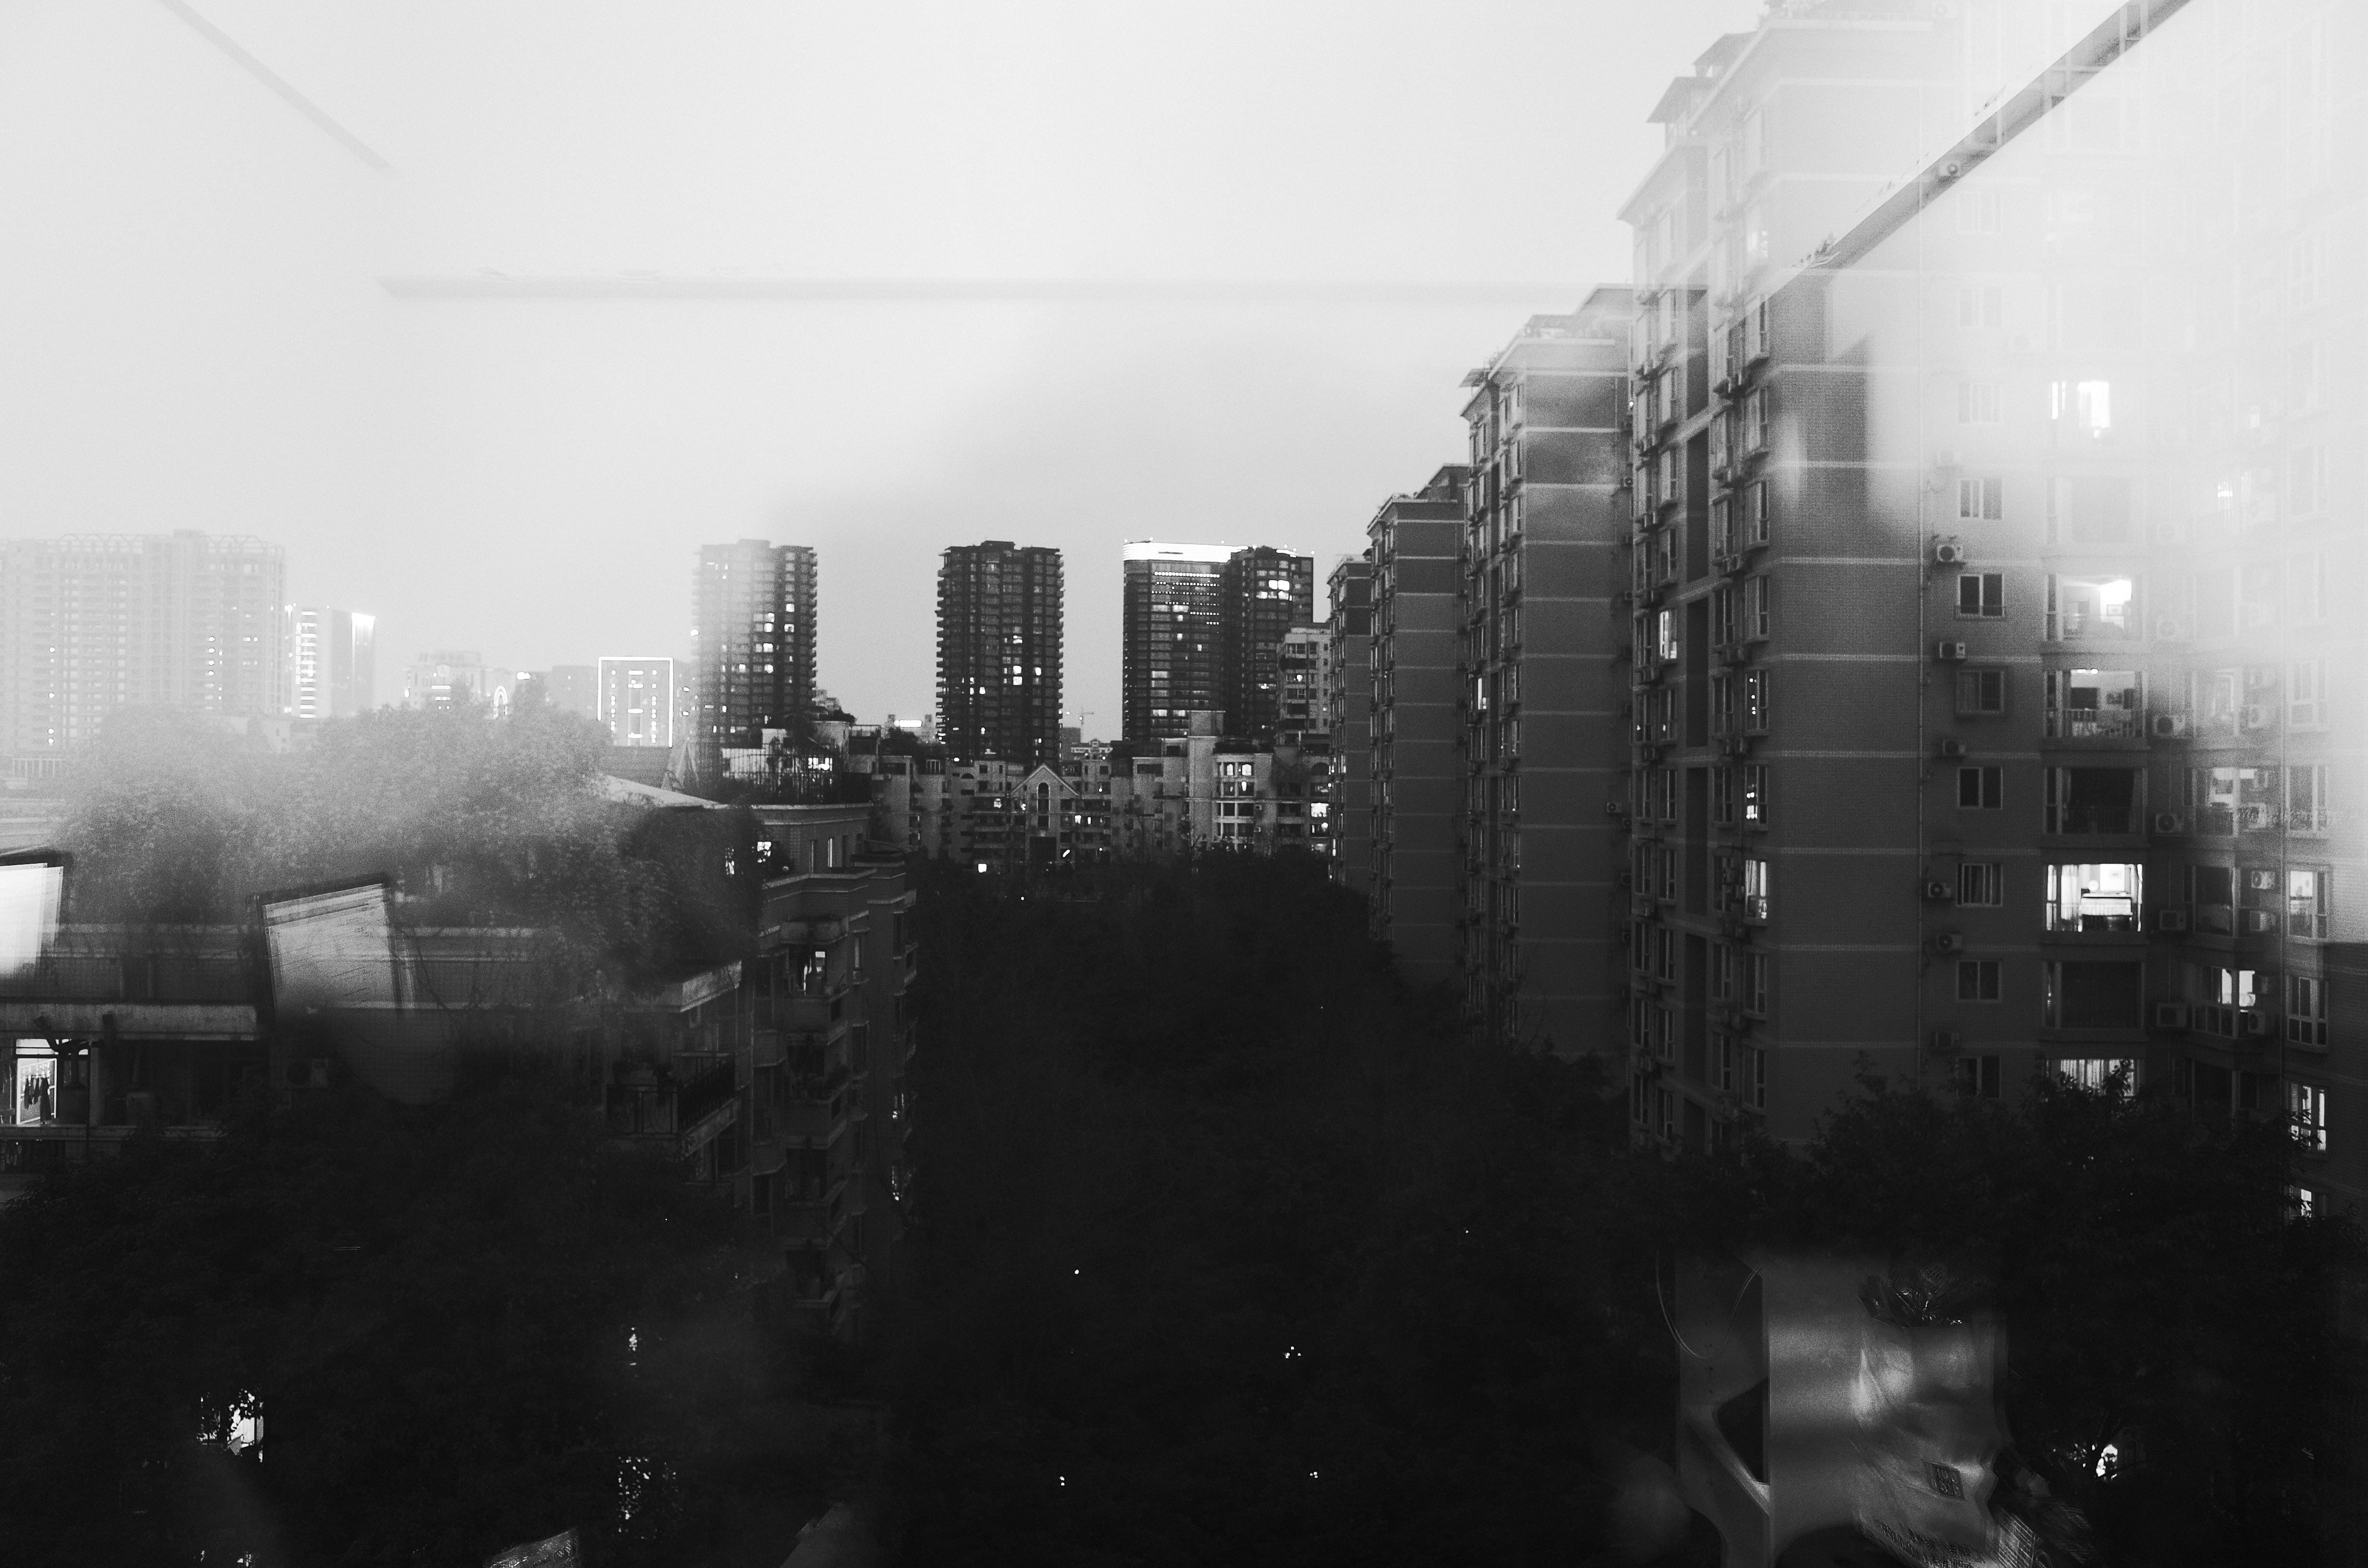 A fuzzy black-and-white shot of an apartment complex seen through a window